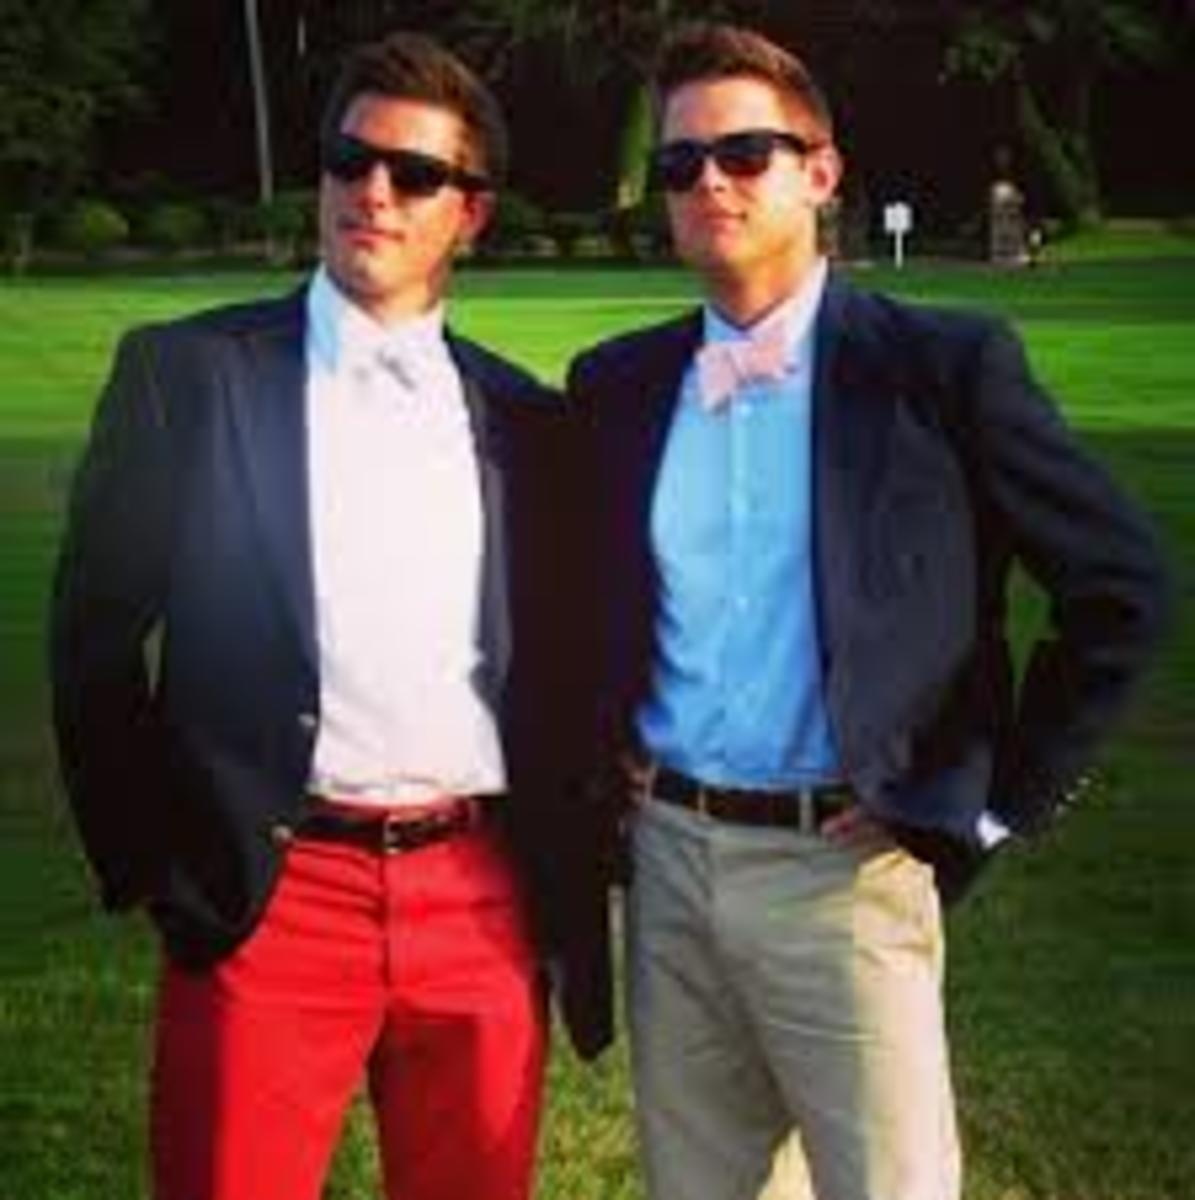 The Southern Frat Star: 10 Wardrobe Essentials